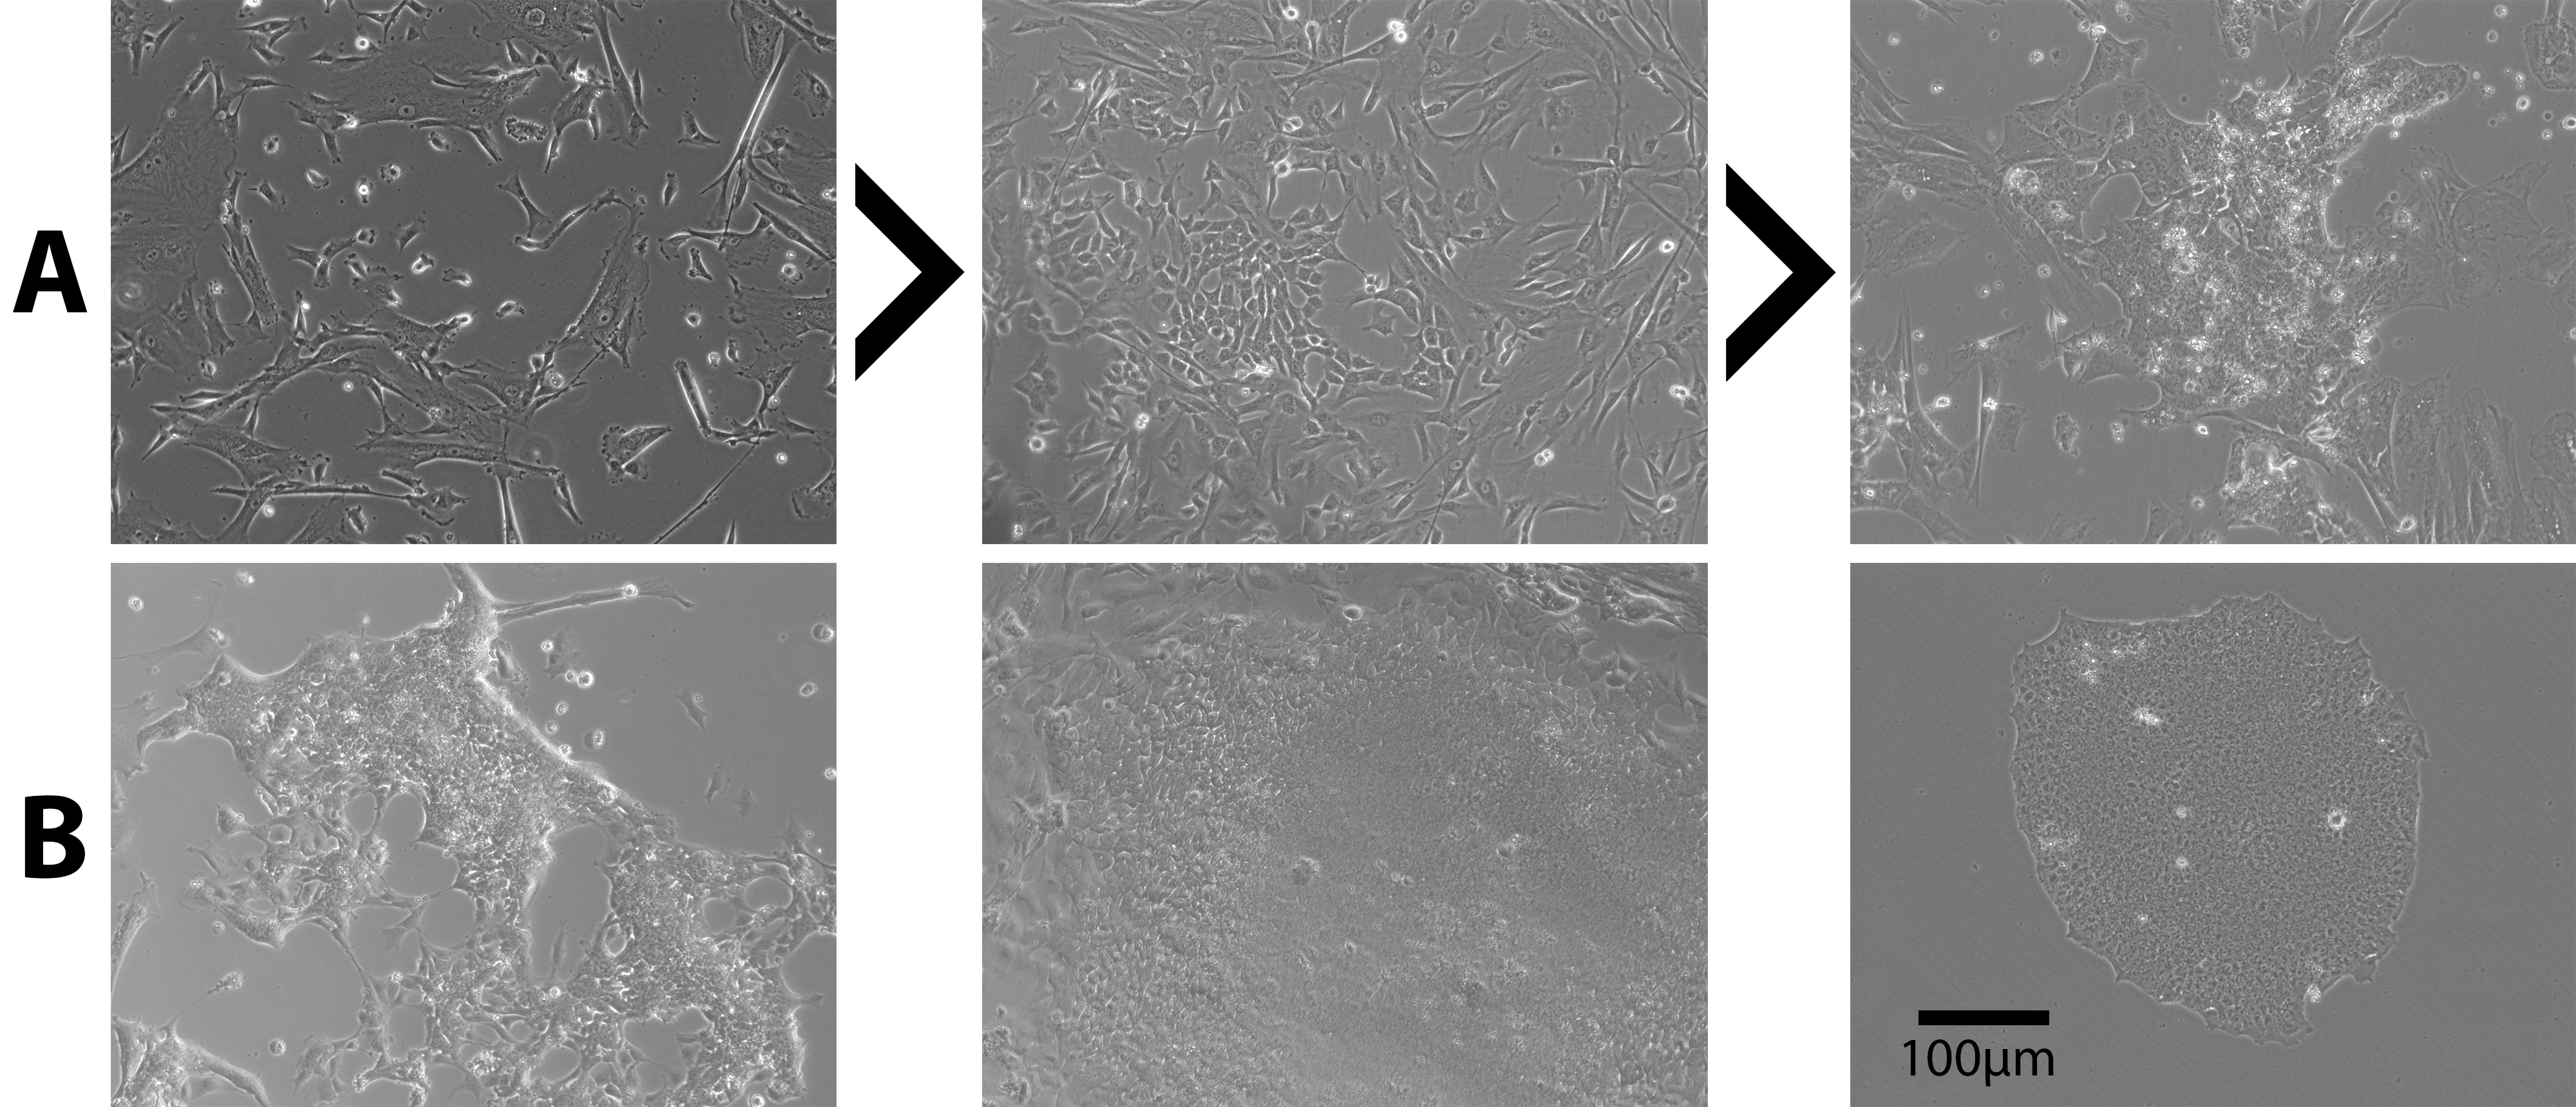 Reprogramming Primary Amniotic Fluid and Membrane Cells to